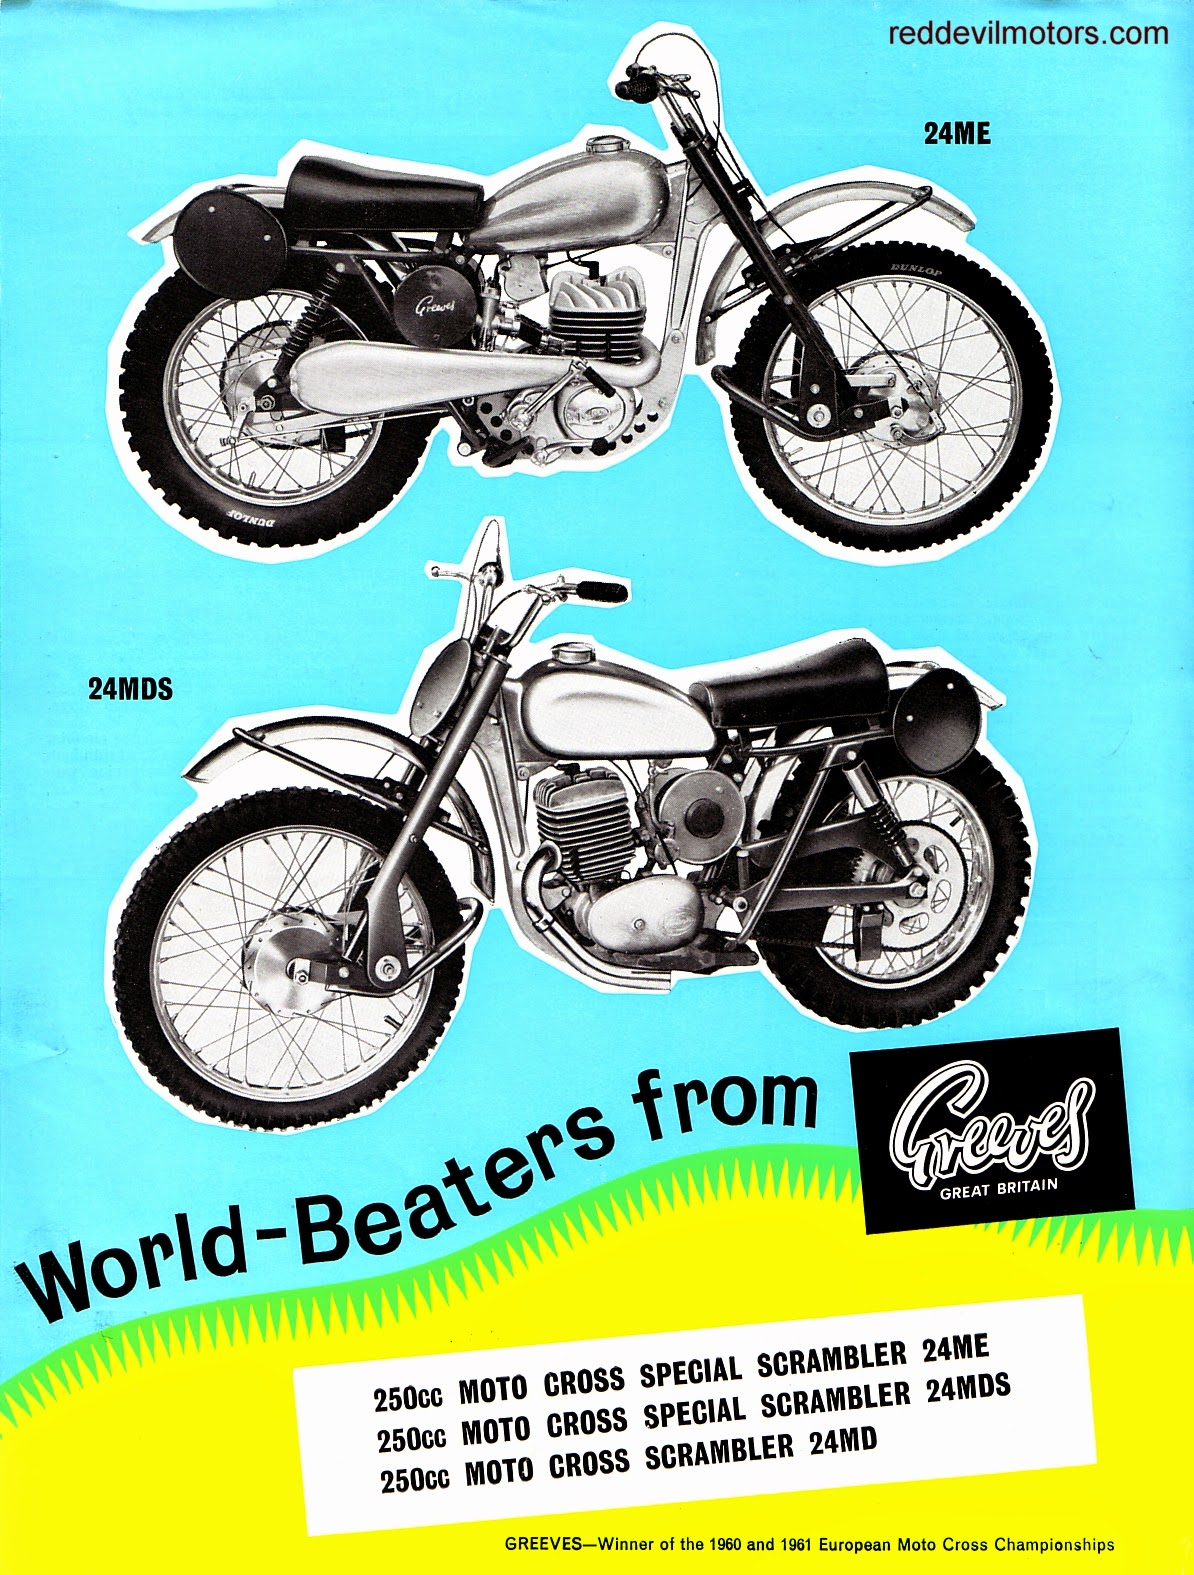 greeves scrambler me md mds 1963